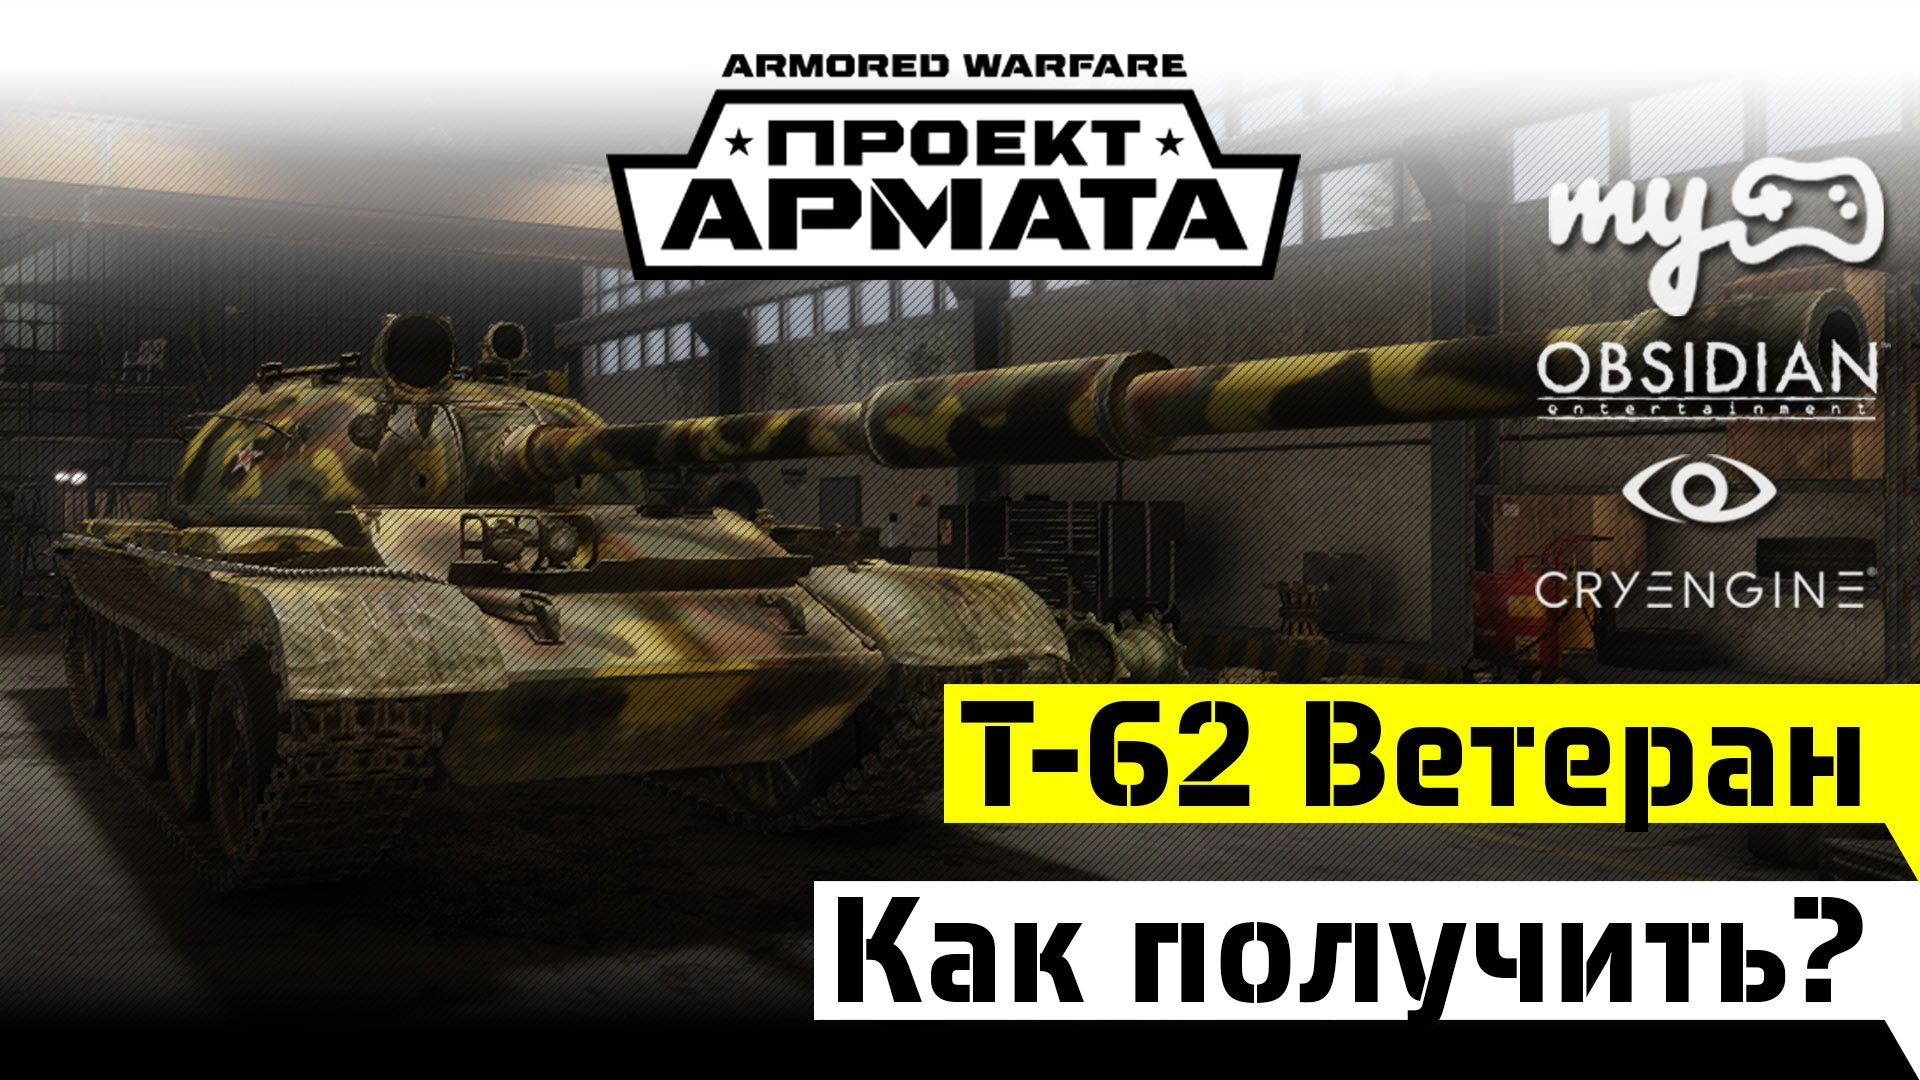 бонус коды на армата armored warfare